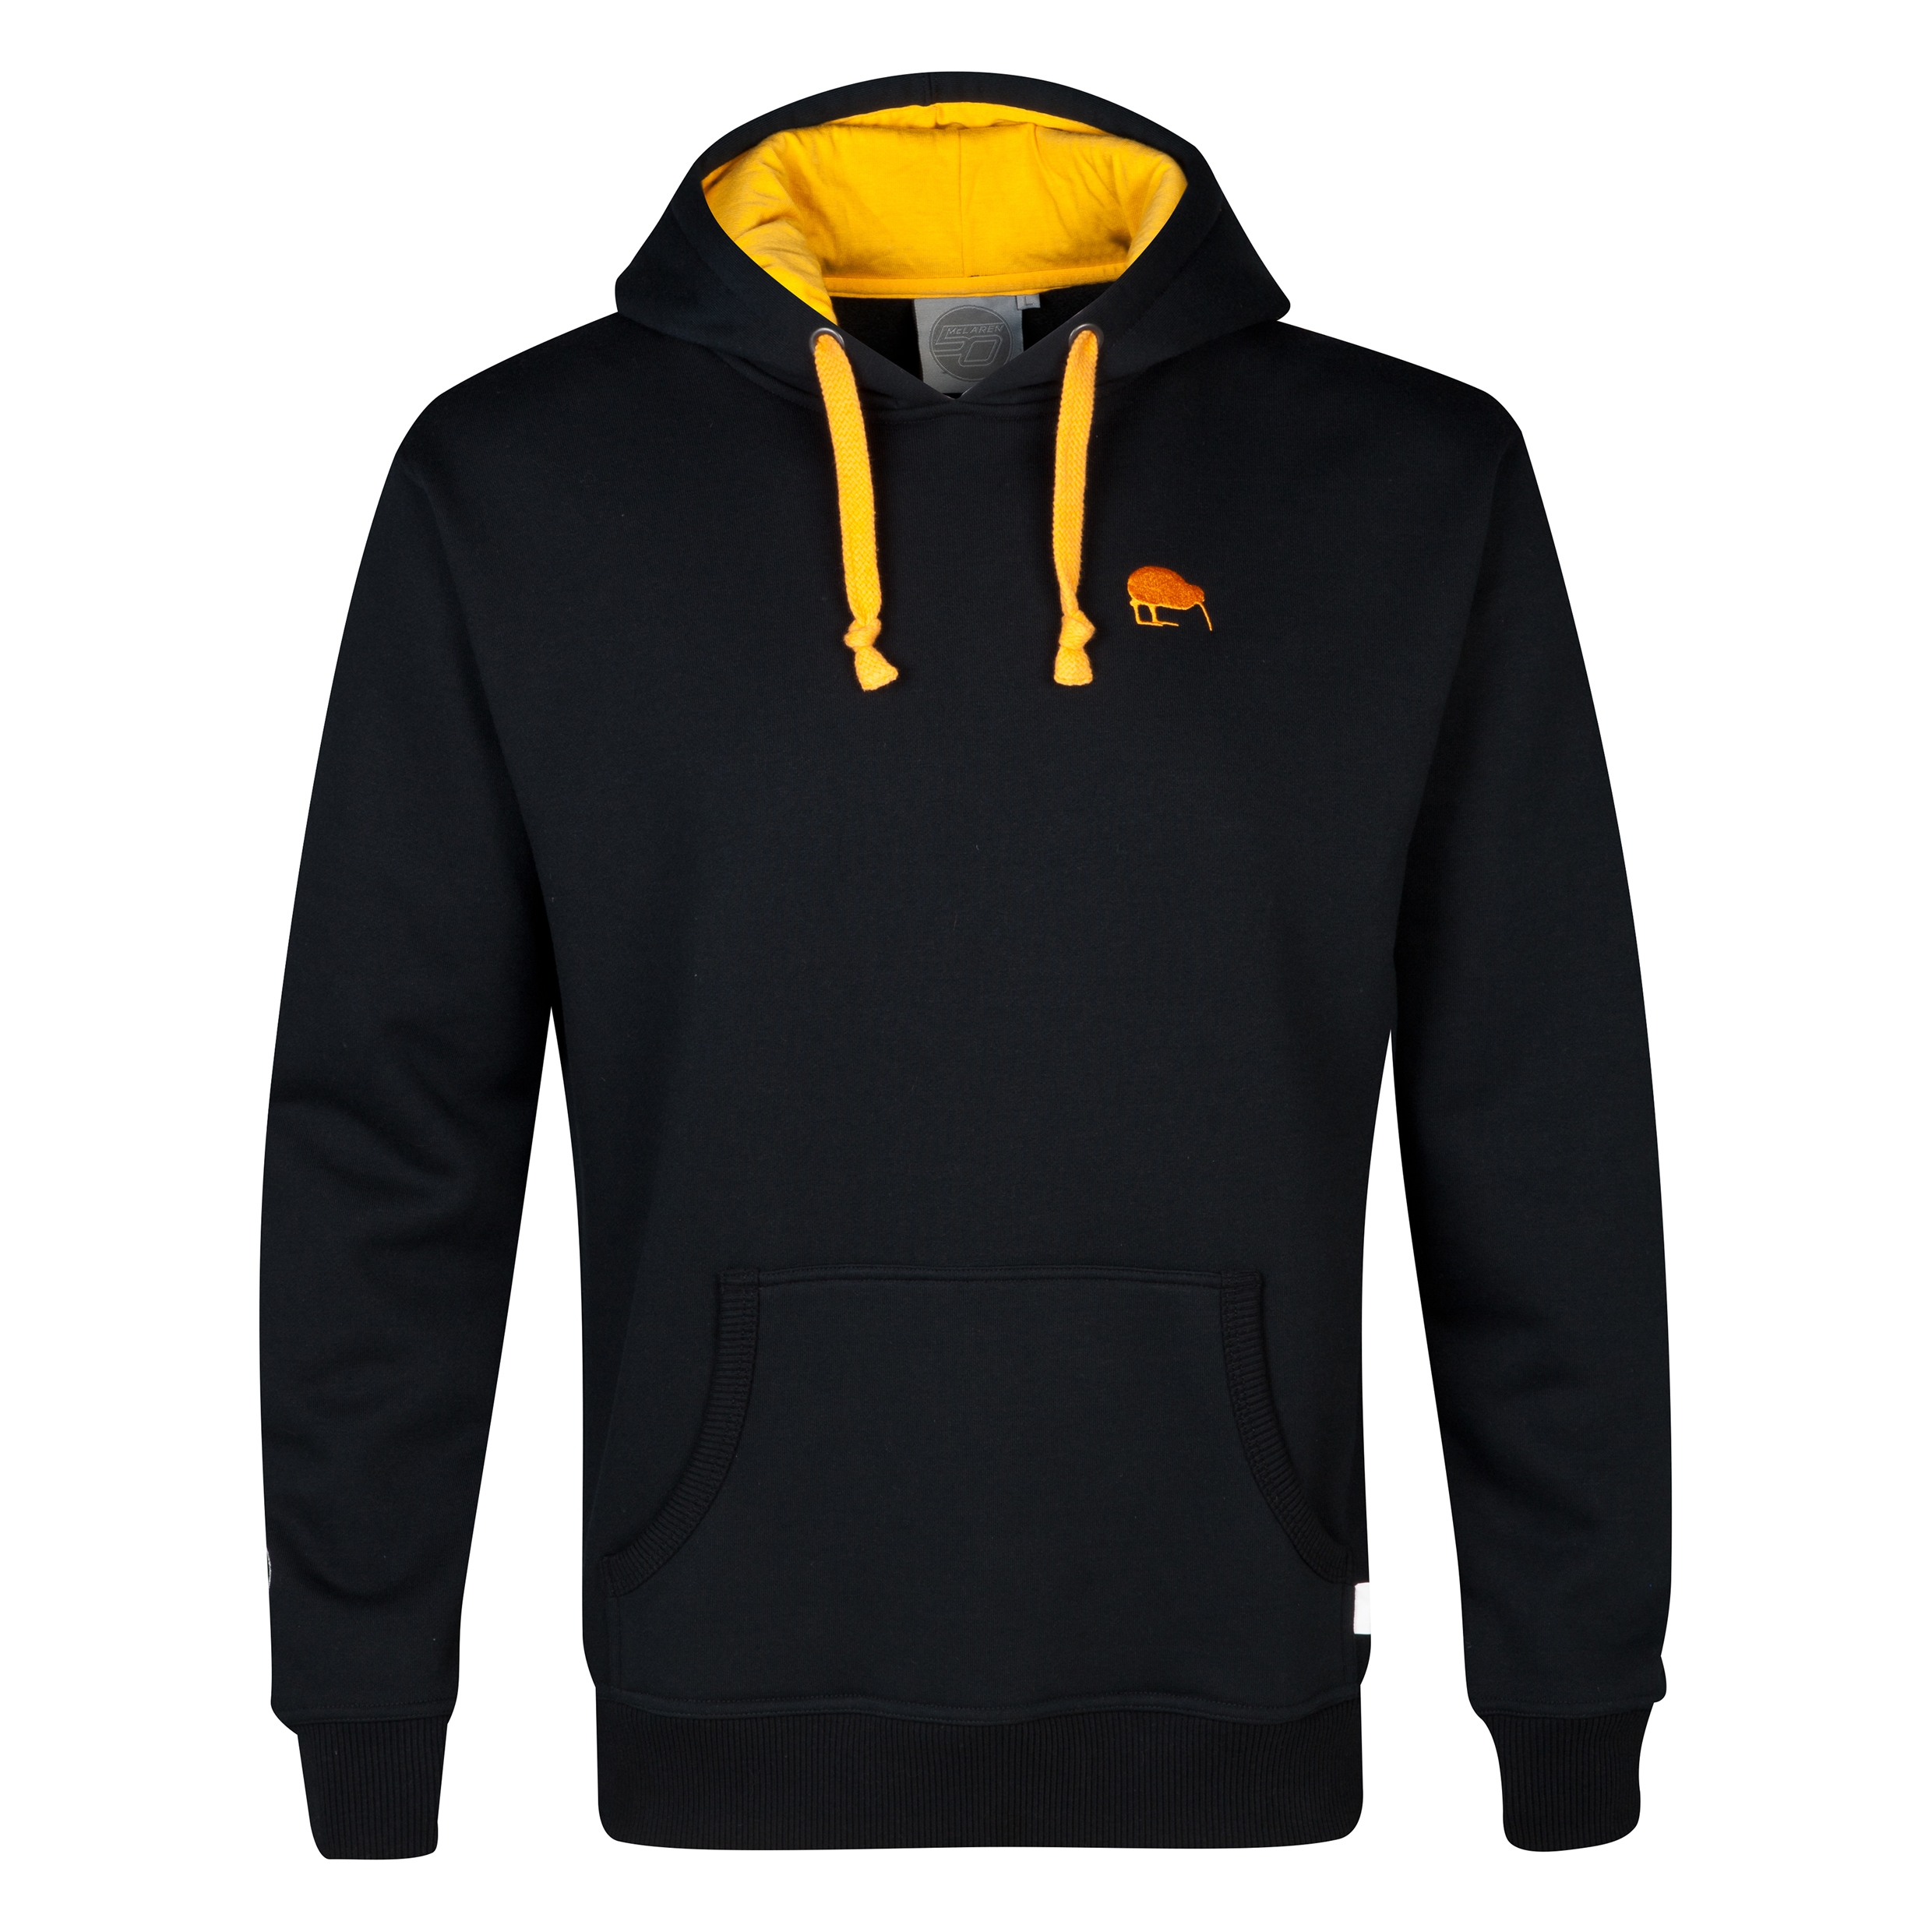 Team McLaren 50th Anniversary Collection Hooded Sweatshirt